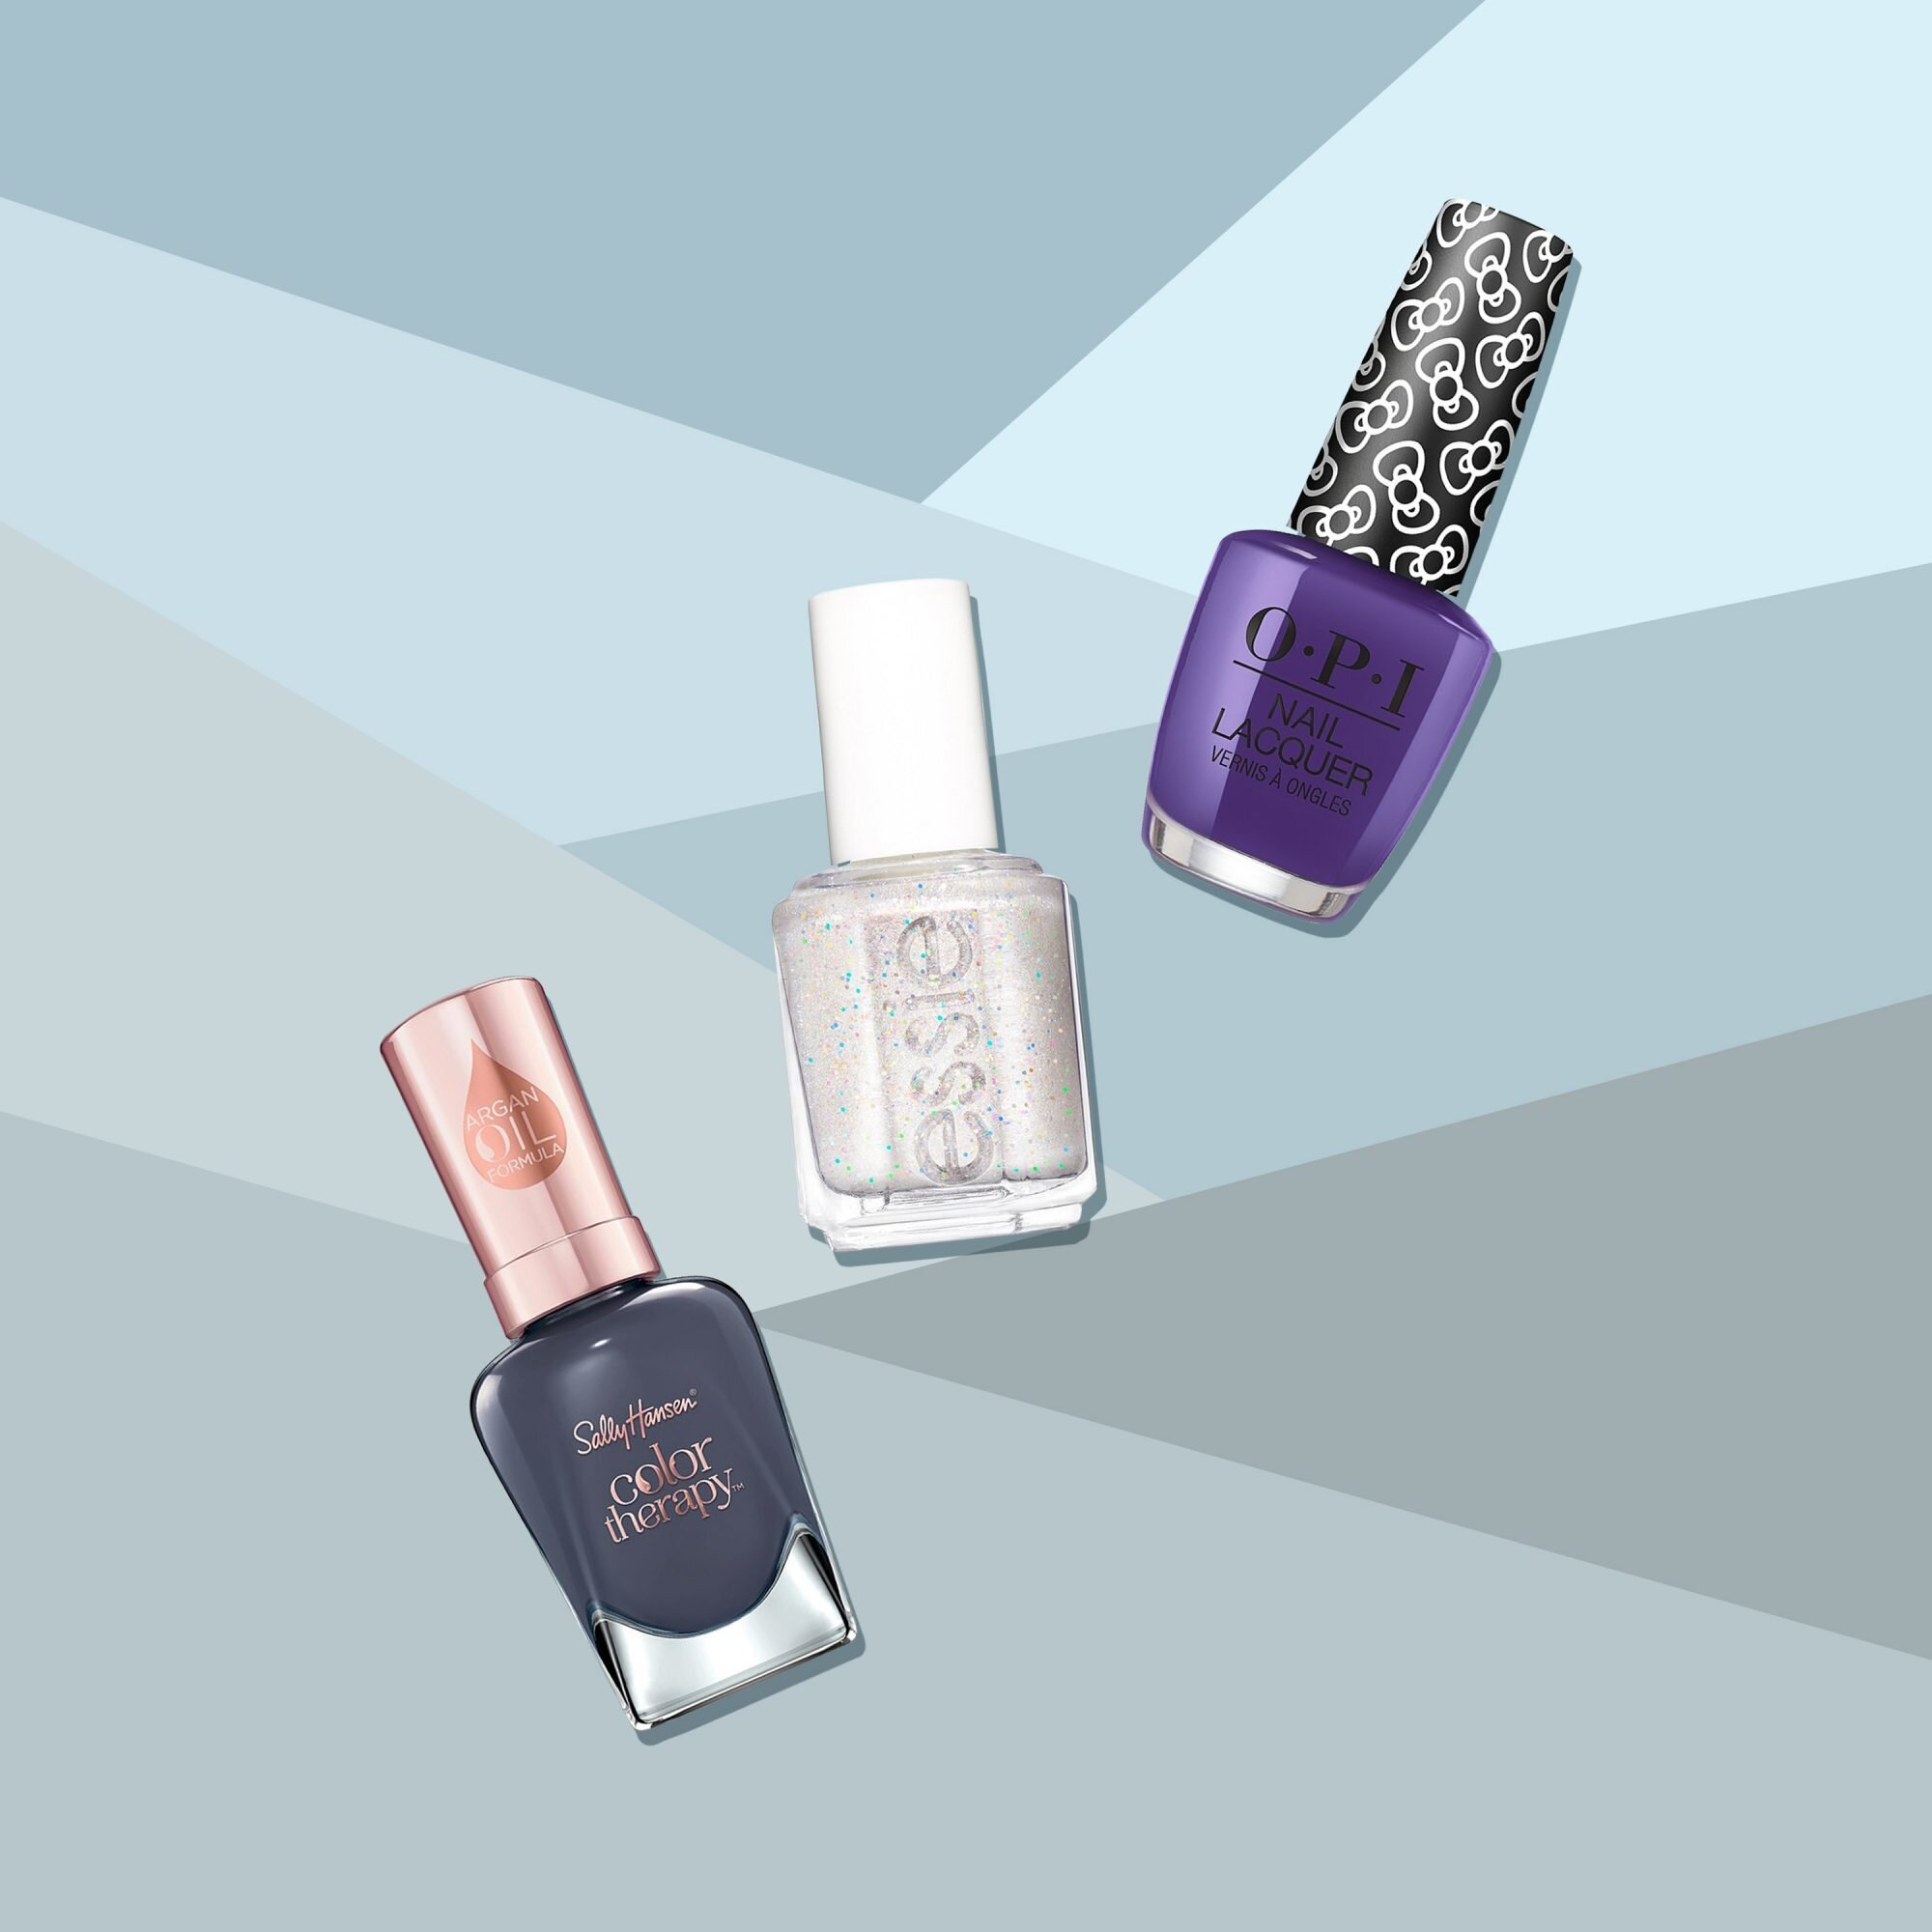 Fall Nail Colors 2020.The Best Nail Polish Colors For Winter 2020 Winter